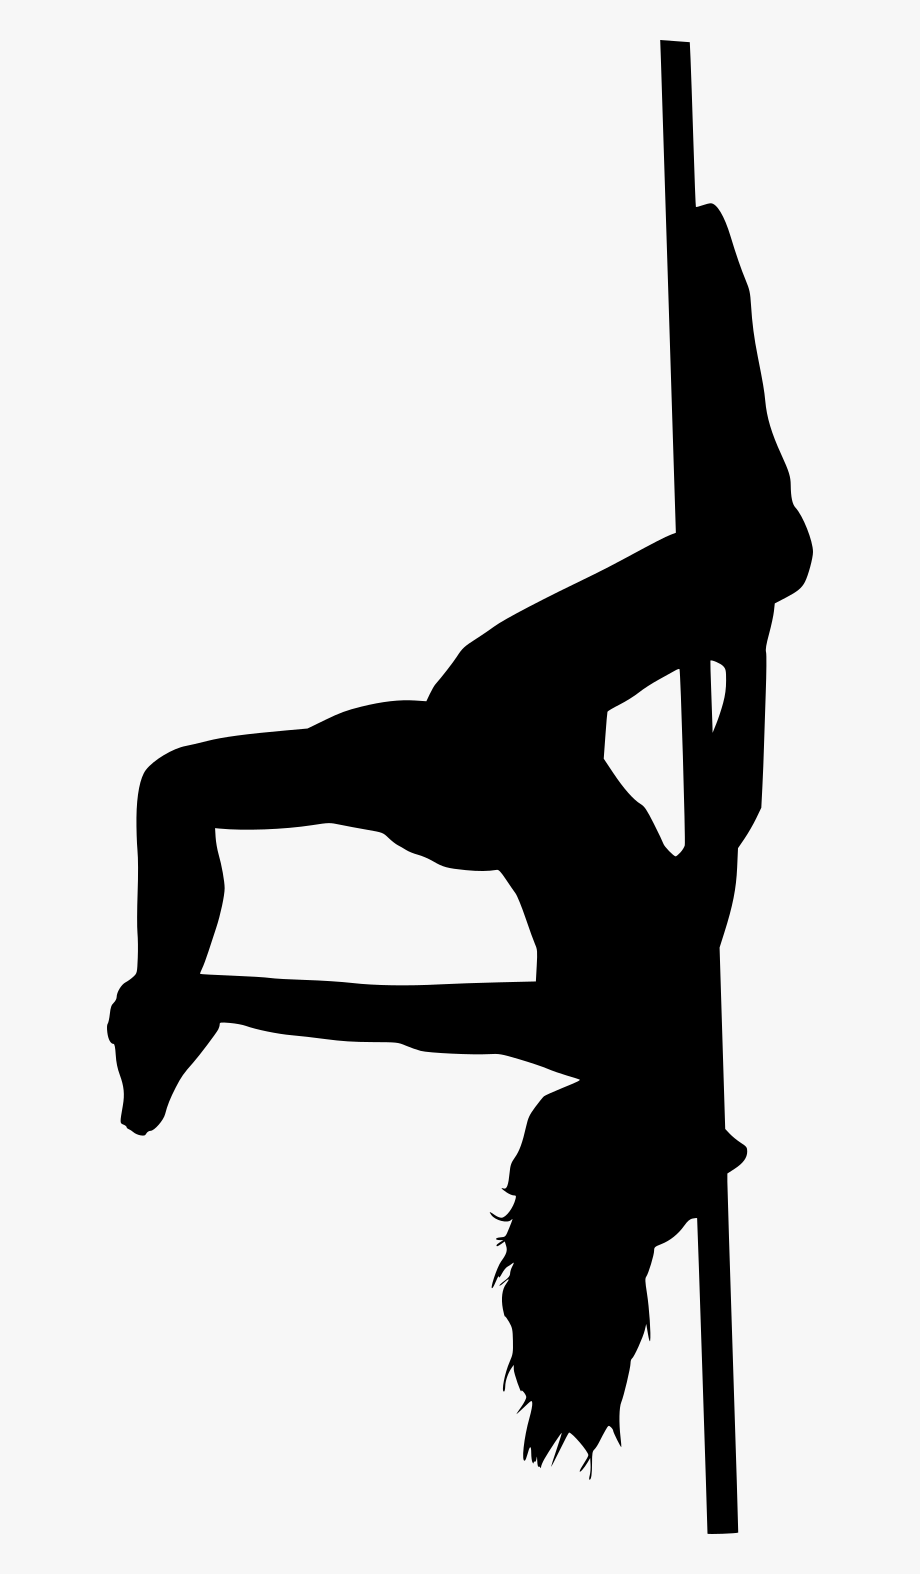 Clip Art Royalty Free Silhouette Png Transparent.